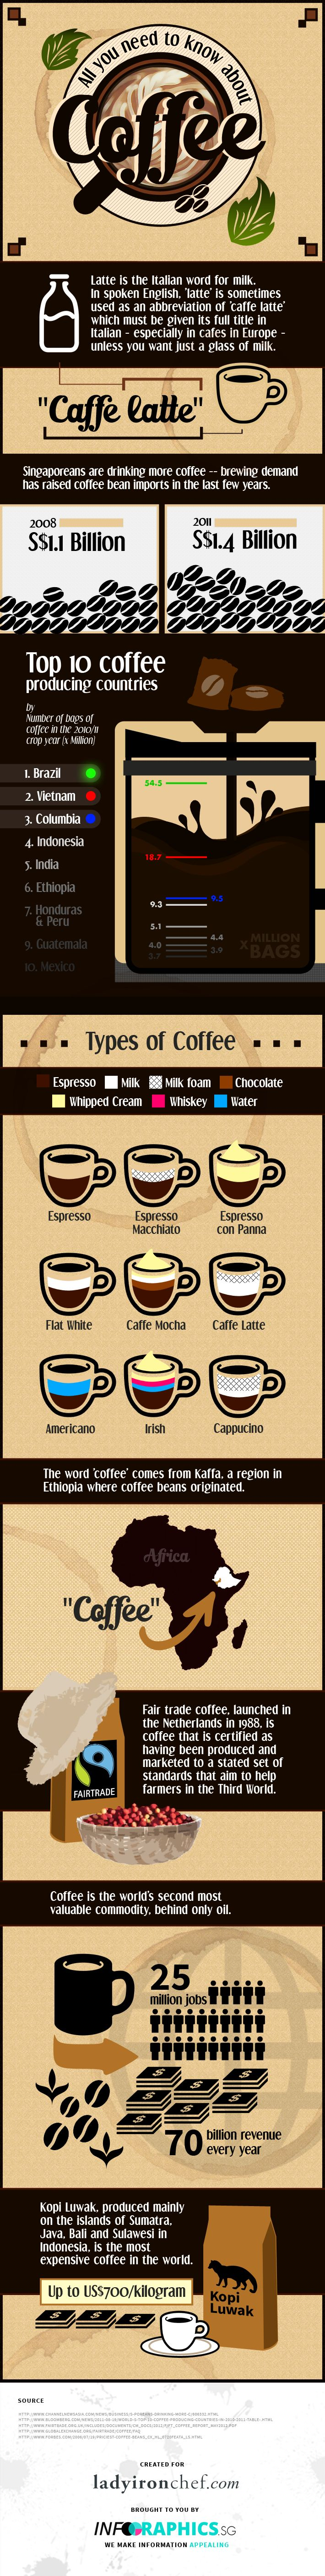 Fun Facts About Coffee [Infographic] | ladyironchef: Food & Travel #gourmetcoffeealternative I love this bit of knowledge.